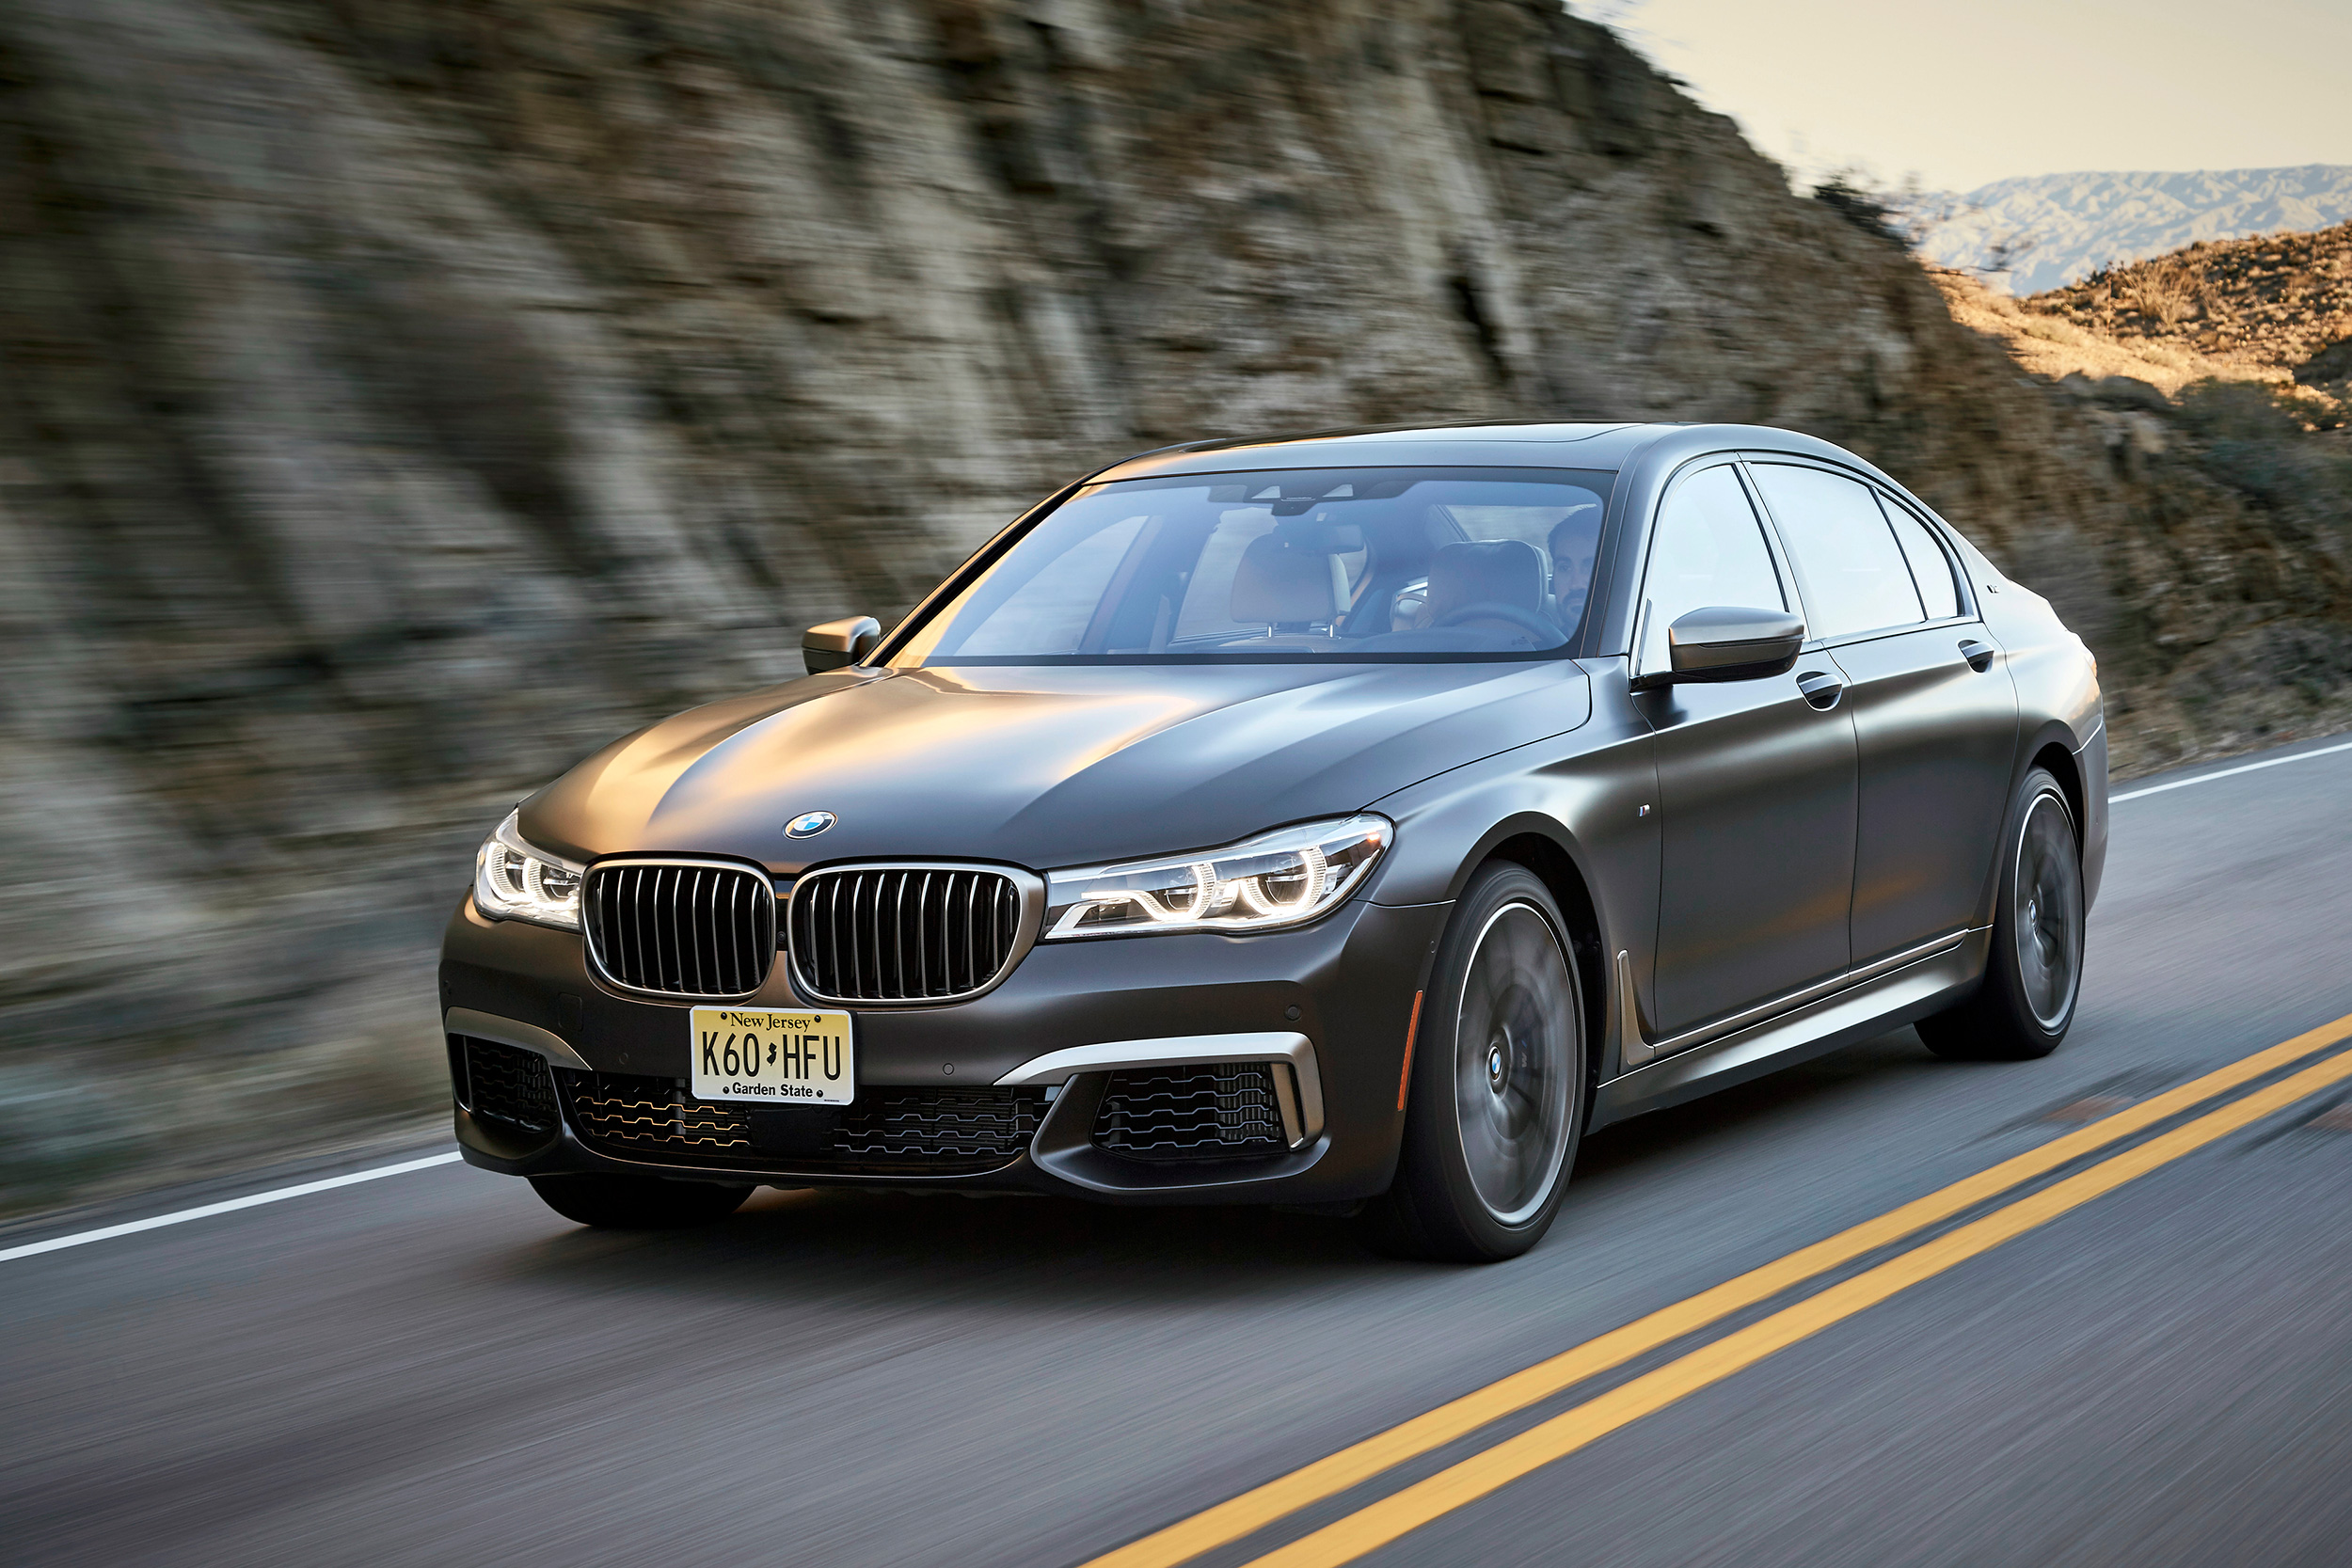 with images reviews price alpina amazing ratings msrp news bmw